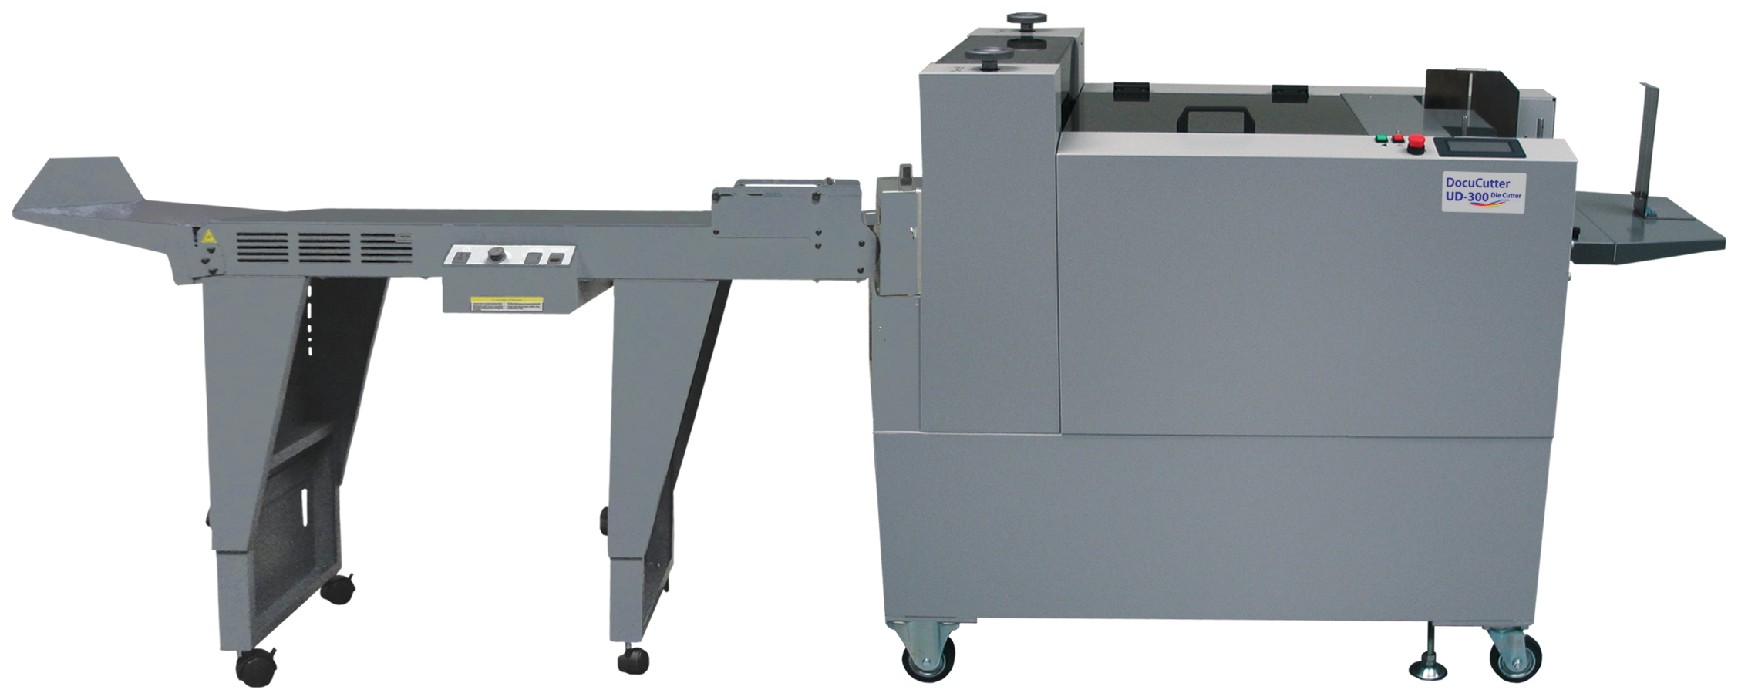 UD-300 Rotary Die Cutter Image